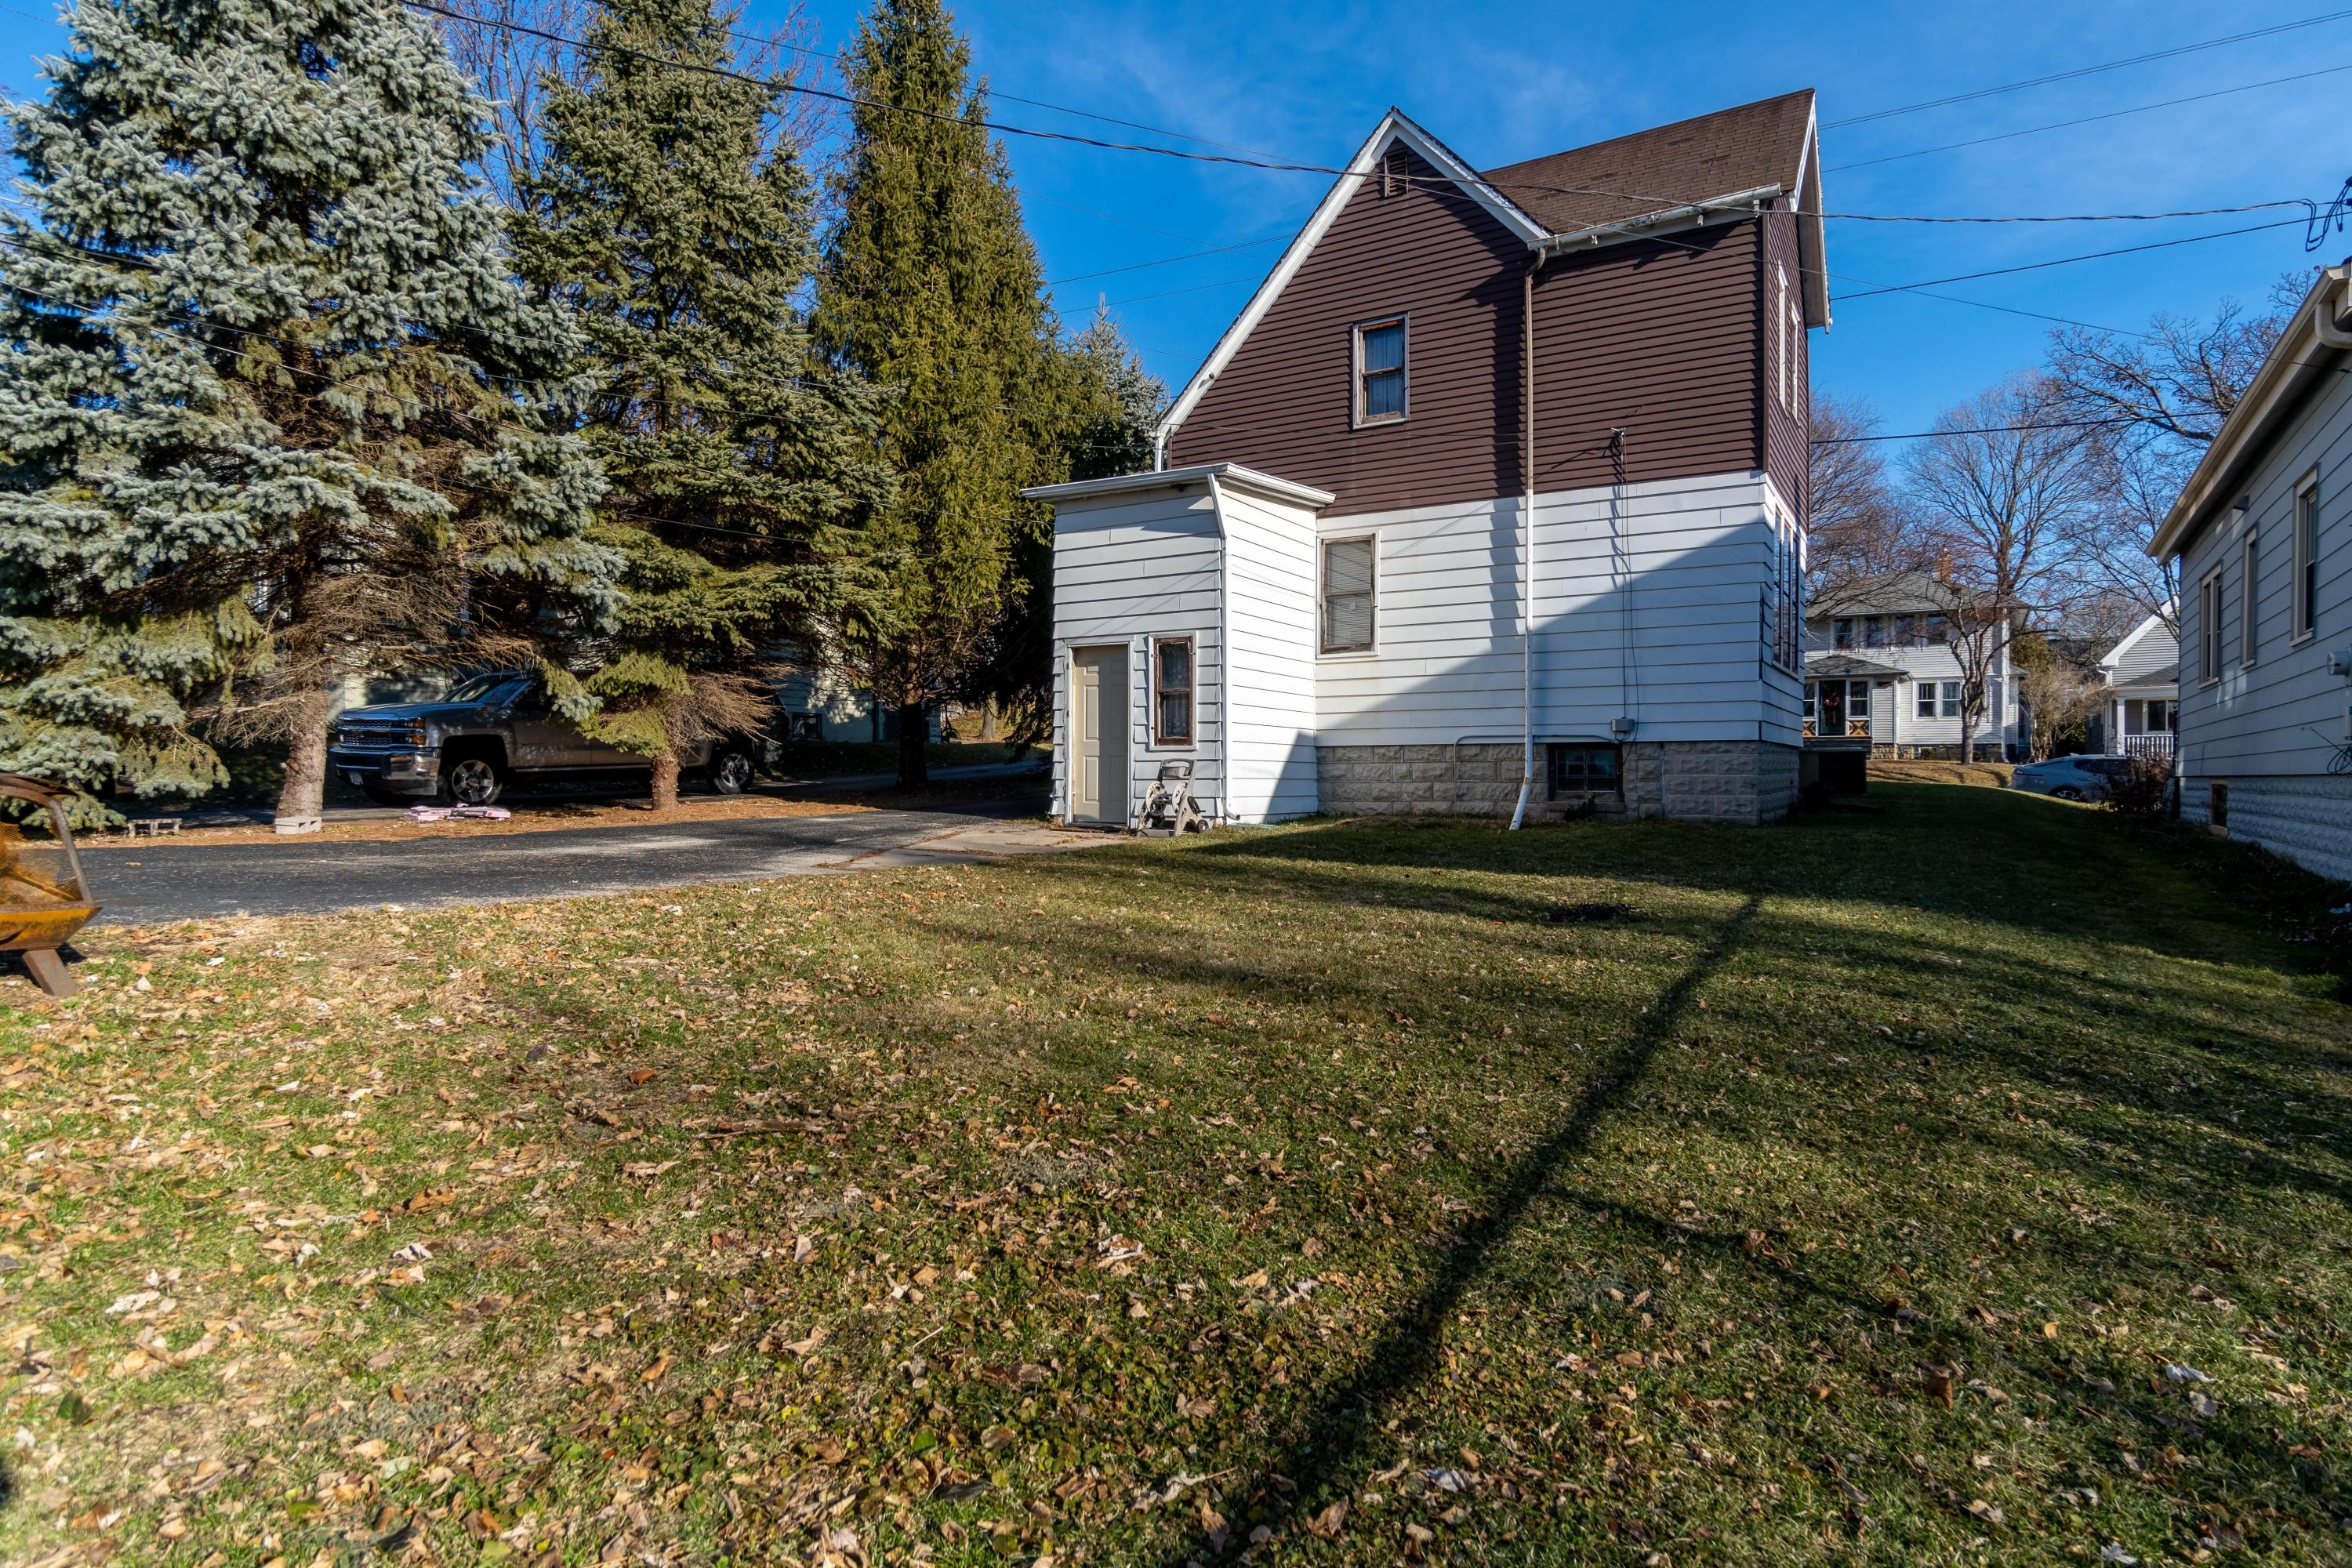 1327 68th St, Wauwatosa, Wisconsin 53213, 3 Bedrooms Bedrooms, ,1 BathroomBathrooms,Single-family,For Sale,68th St,1720532